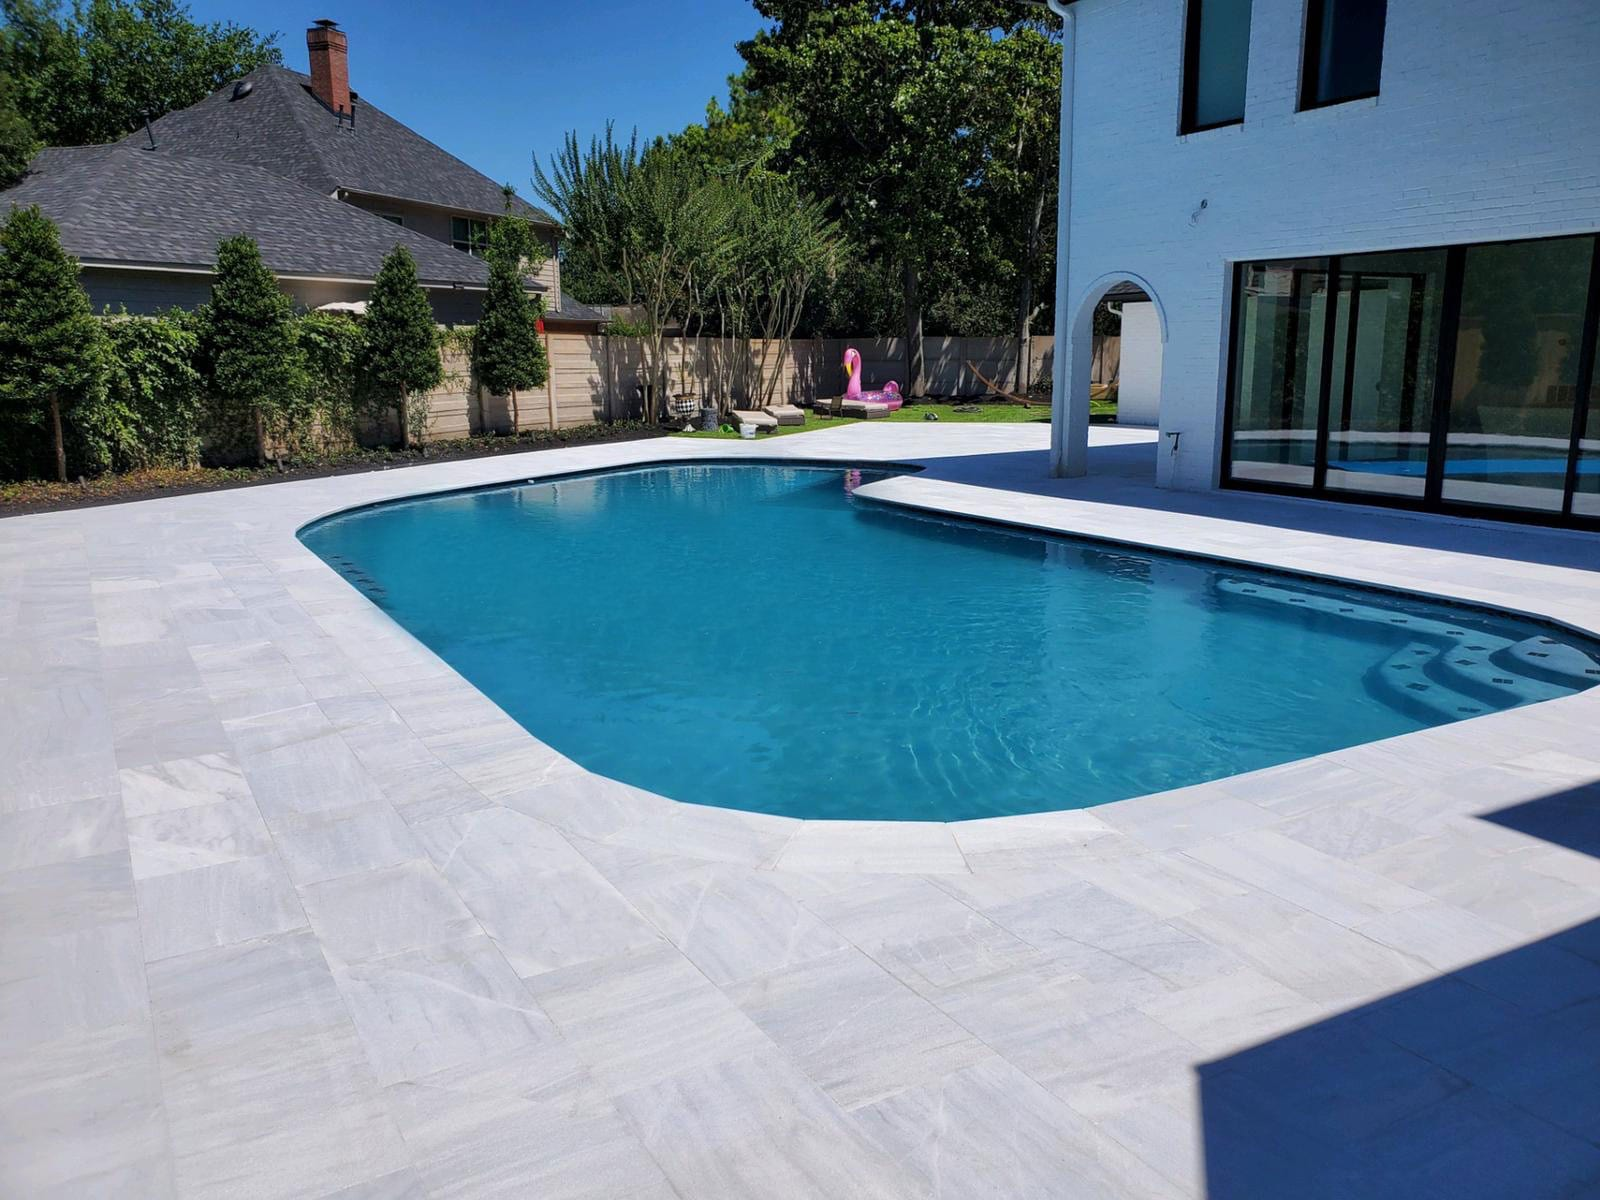 Stoneline-Group-Ice-White-Marble-Collection-Marble-Sand-Blasted-Paver-Pool-deck-backyards-walkway-outdoor-Pictures-4